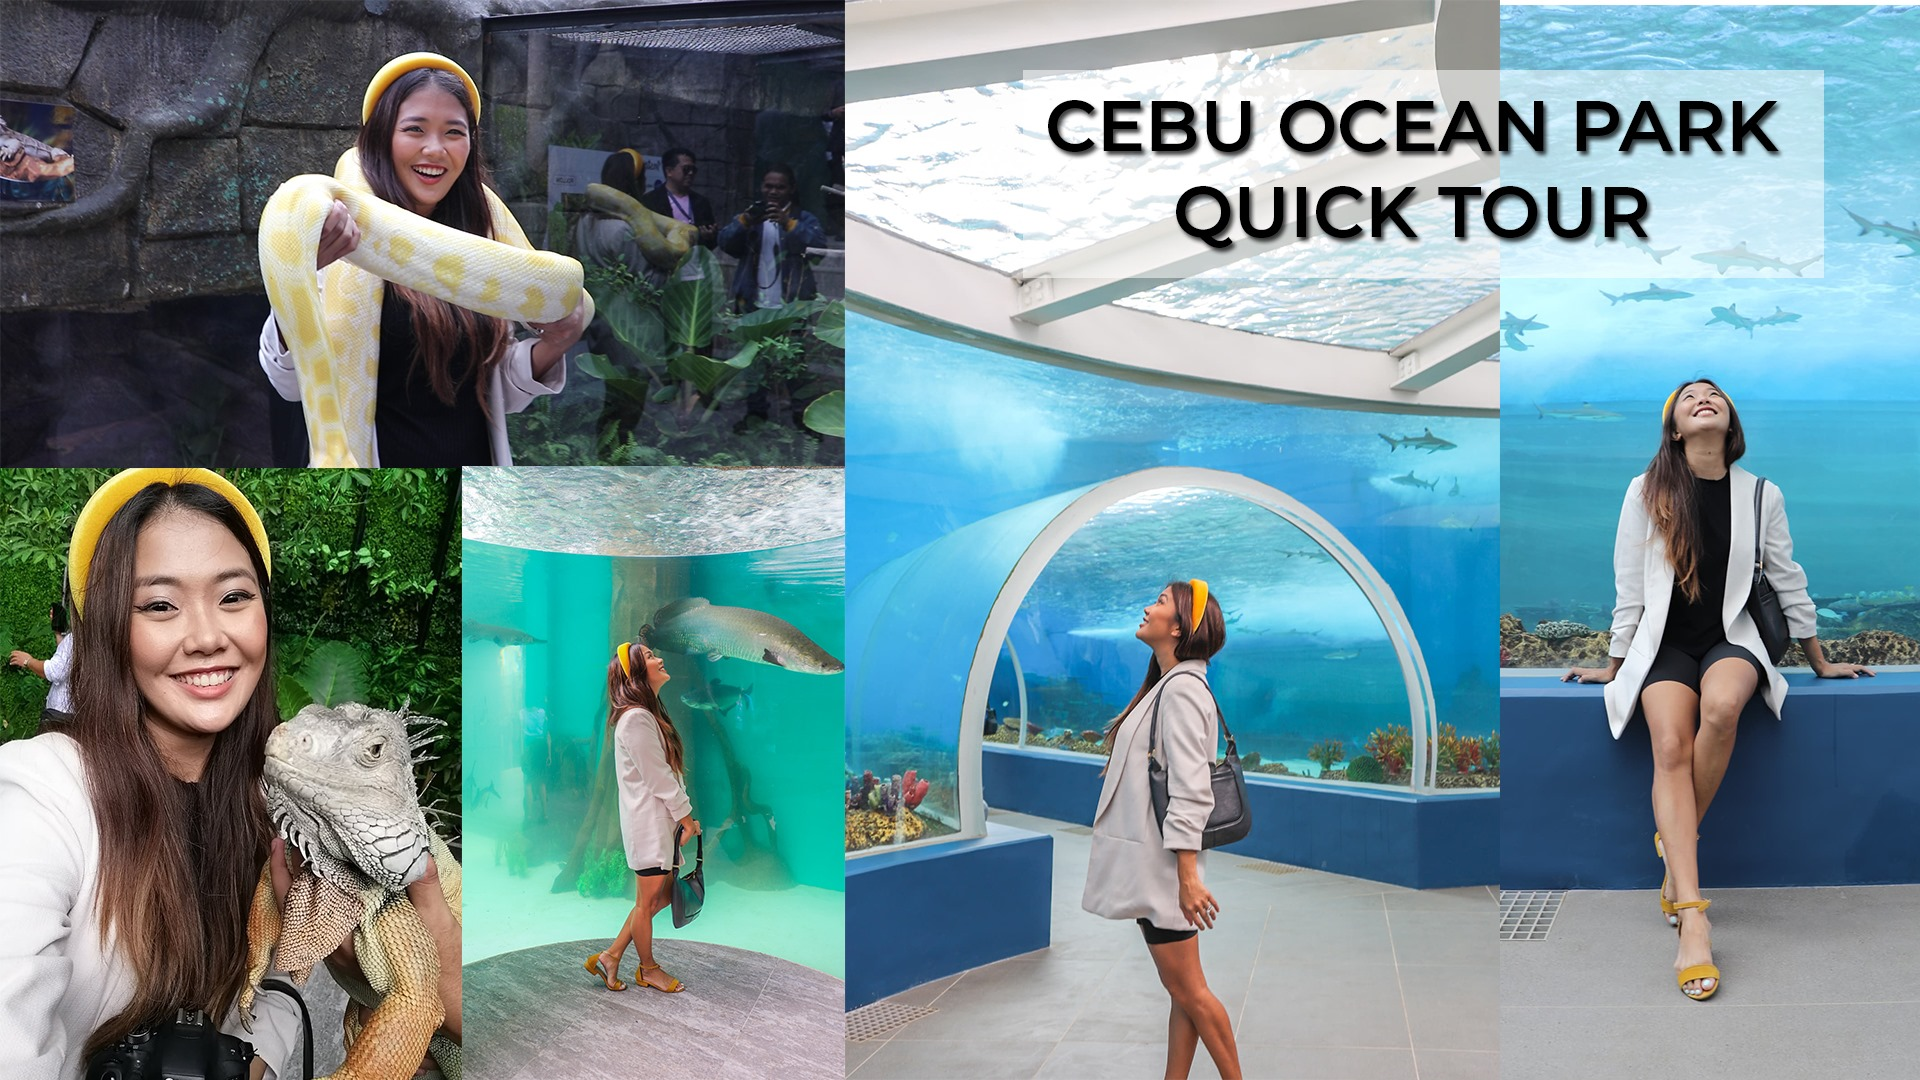 [VLOG/ BLOG] Cebu Ocean Park- Everything You Need To Know- Prices, Attractions, Interactions, Etc.